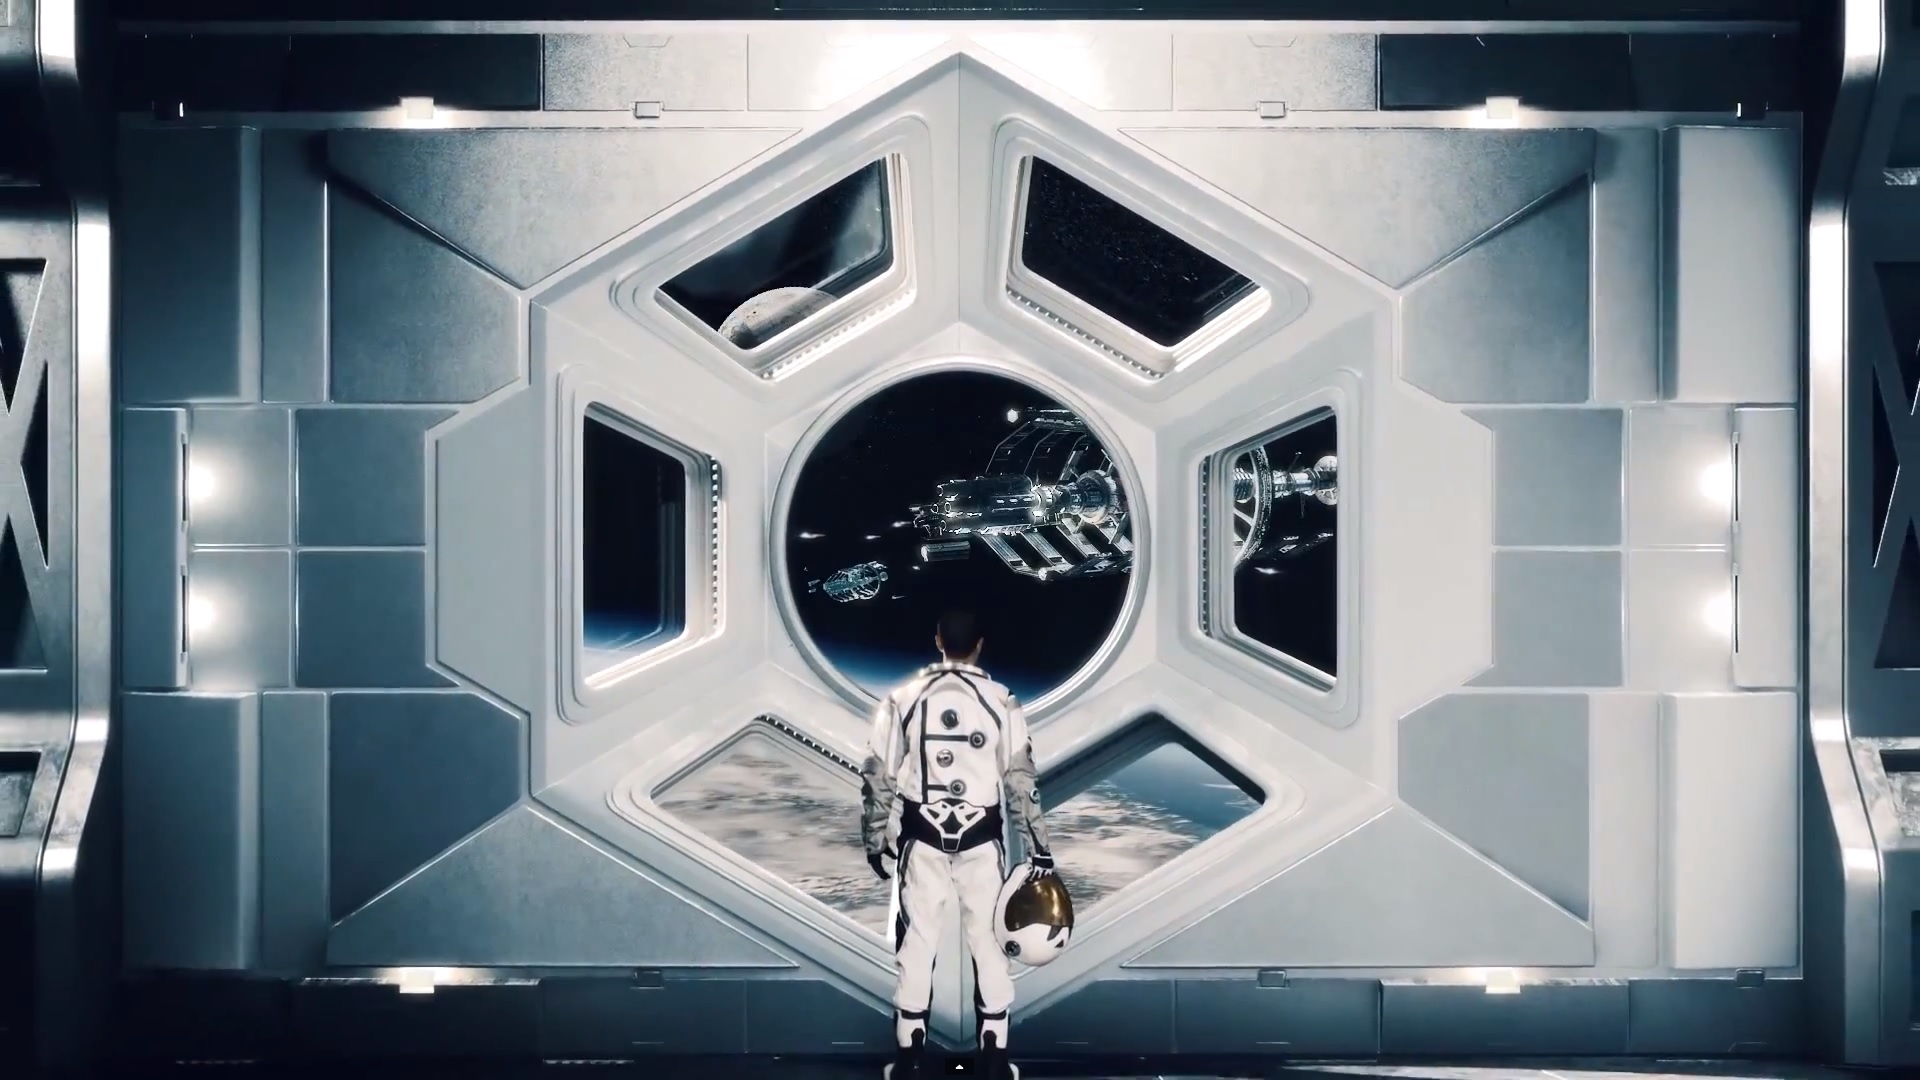 Todo lo que necesitas saber de Civilization: Beyond Earth en este video